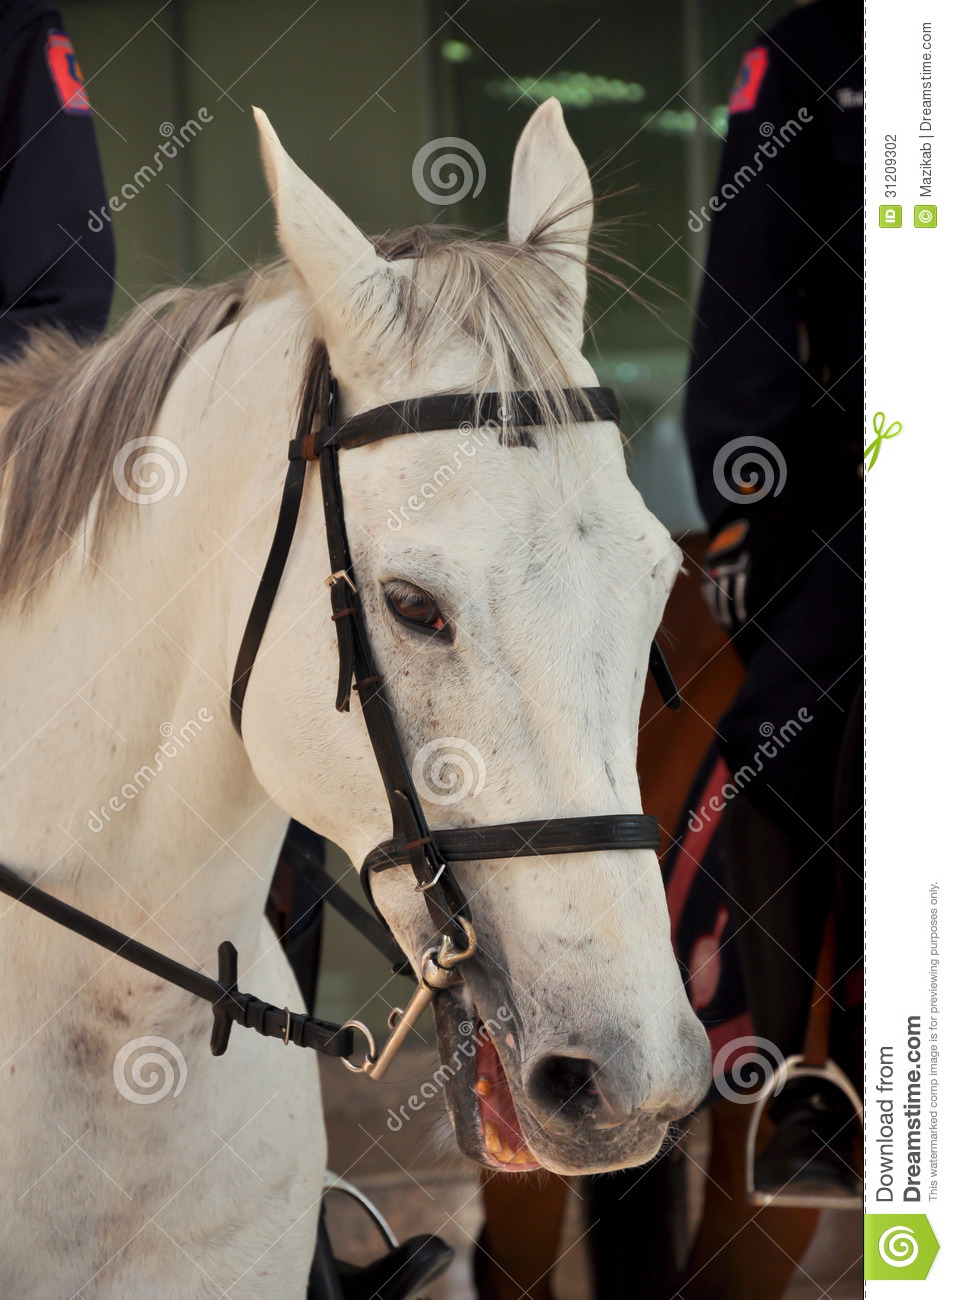 horse and human relationship